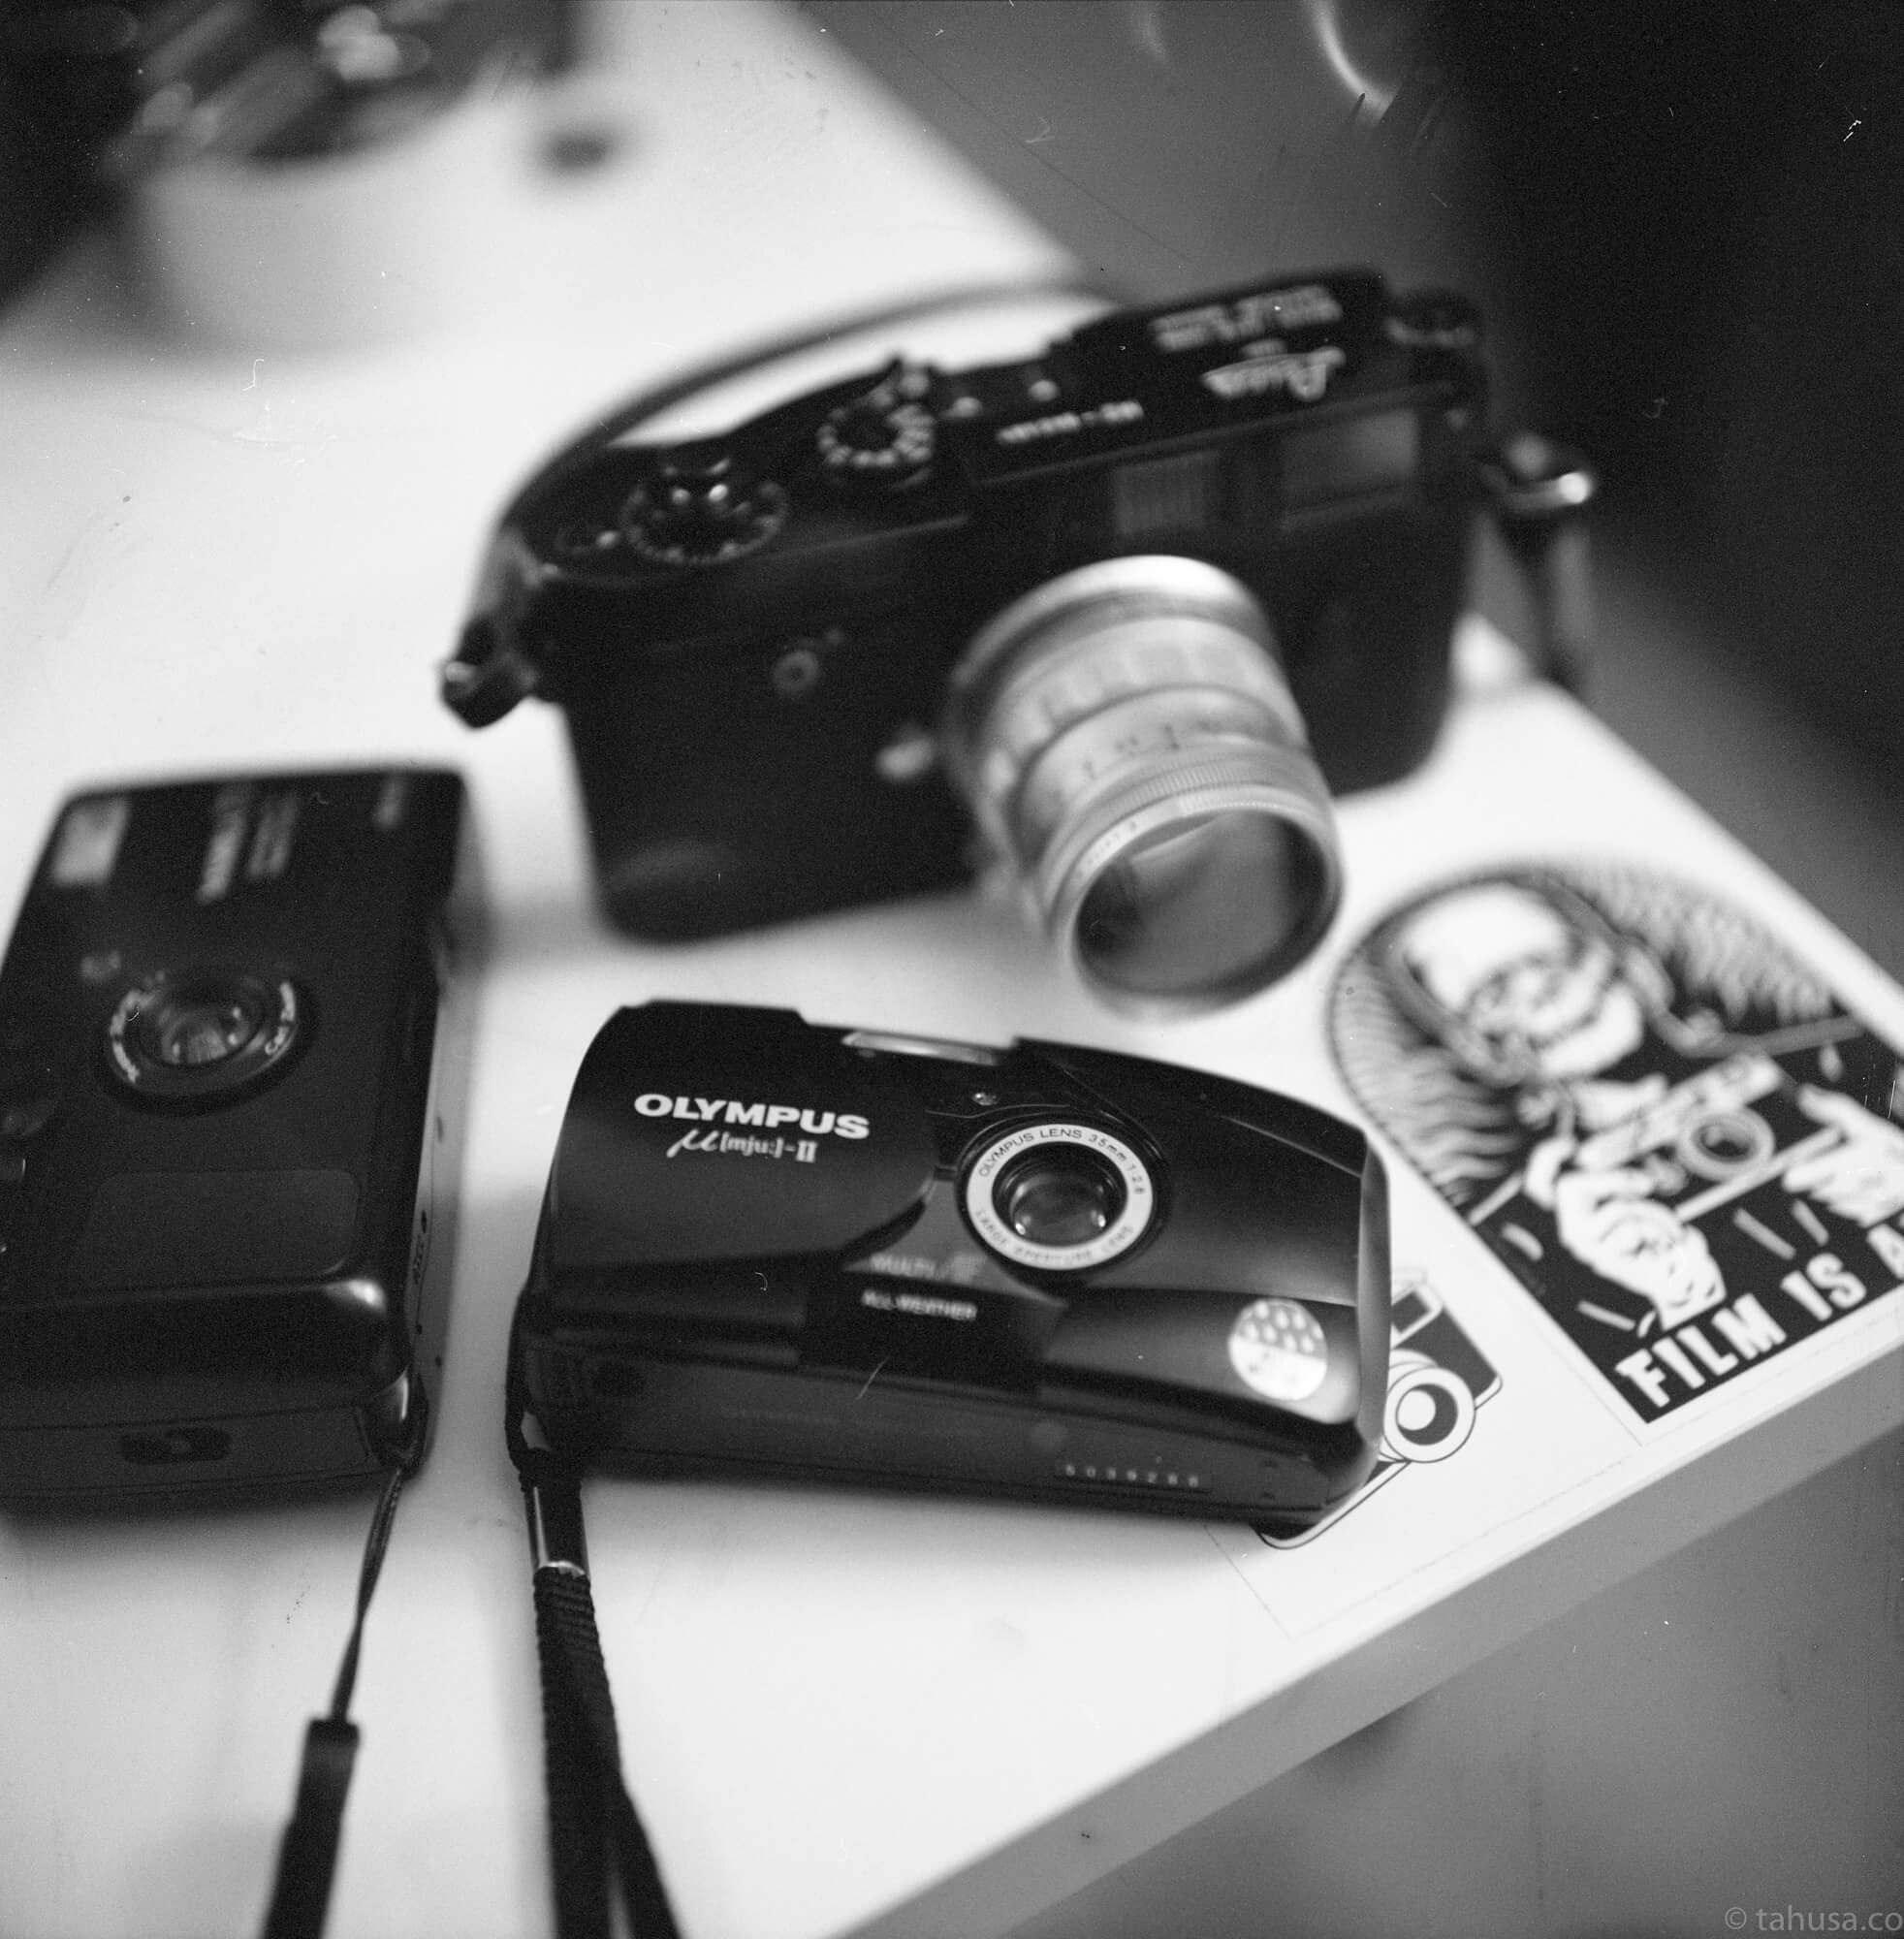 rolleiflex, 2.8F, 2.8F, Rollei, amateur, film beginner, comparison, delta hp5, difference, serious shooter, Hong Kong, HK, explore, explorer, exploring, 旅攝, 底片, 胶卷, v700 epson, 菲林, 比較, 用家, 分析, 菲林攝影, 單反, modern lens, leica camera, leica photo, street photography, summicron, summilux, summaron, summicron 35mm, 35mm f2, v1, 8elements, 8 elements, 八妹, 八枚玉, pre-asph, old lens, vintage lens, rangefinder, tone, soft, leica glow, image rendering, Delta 400, iso400, Delta, ilford, black and white film, film review, analog, analogue, film camera, film is not dead, 黑白